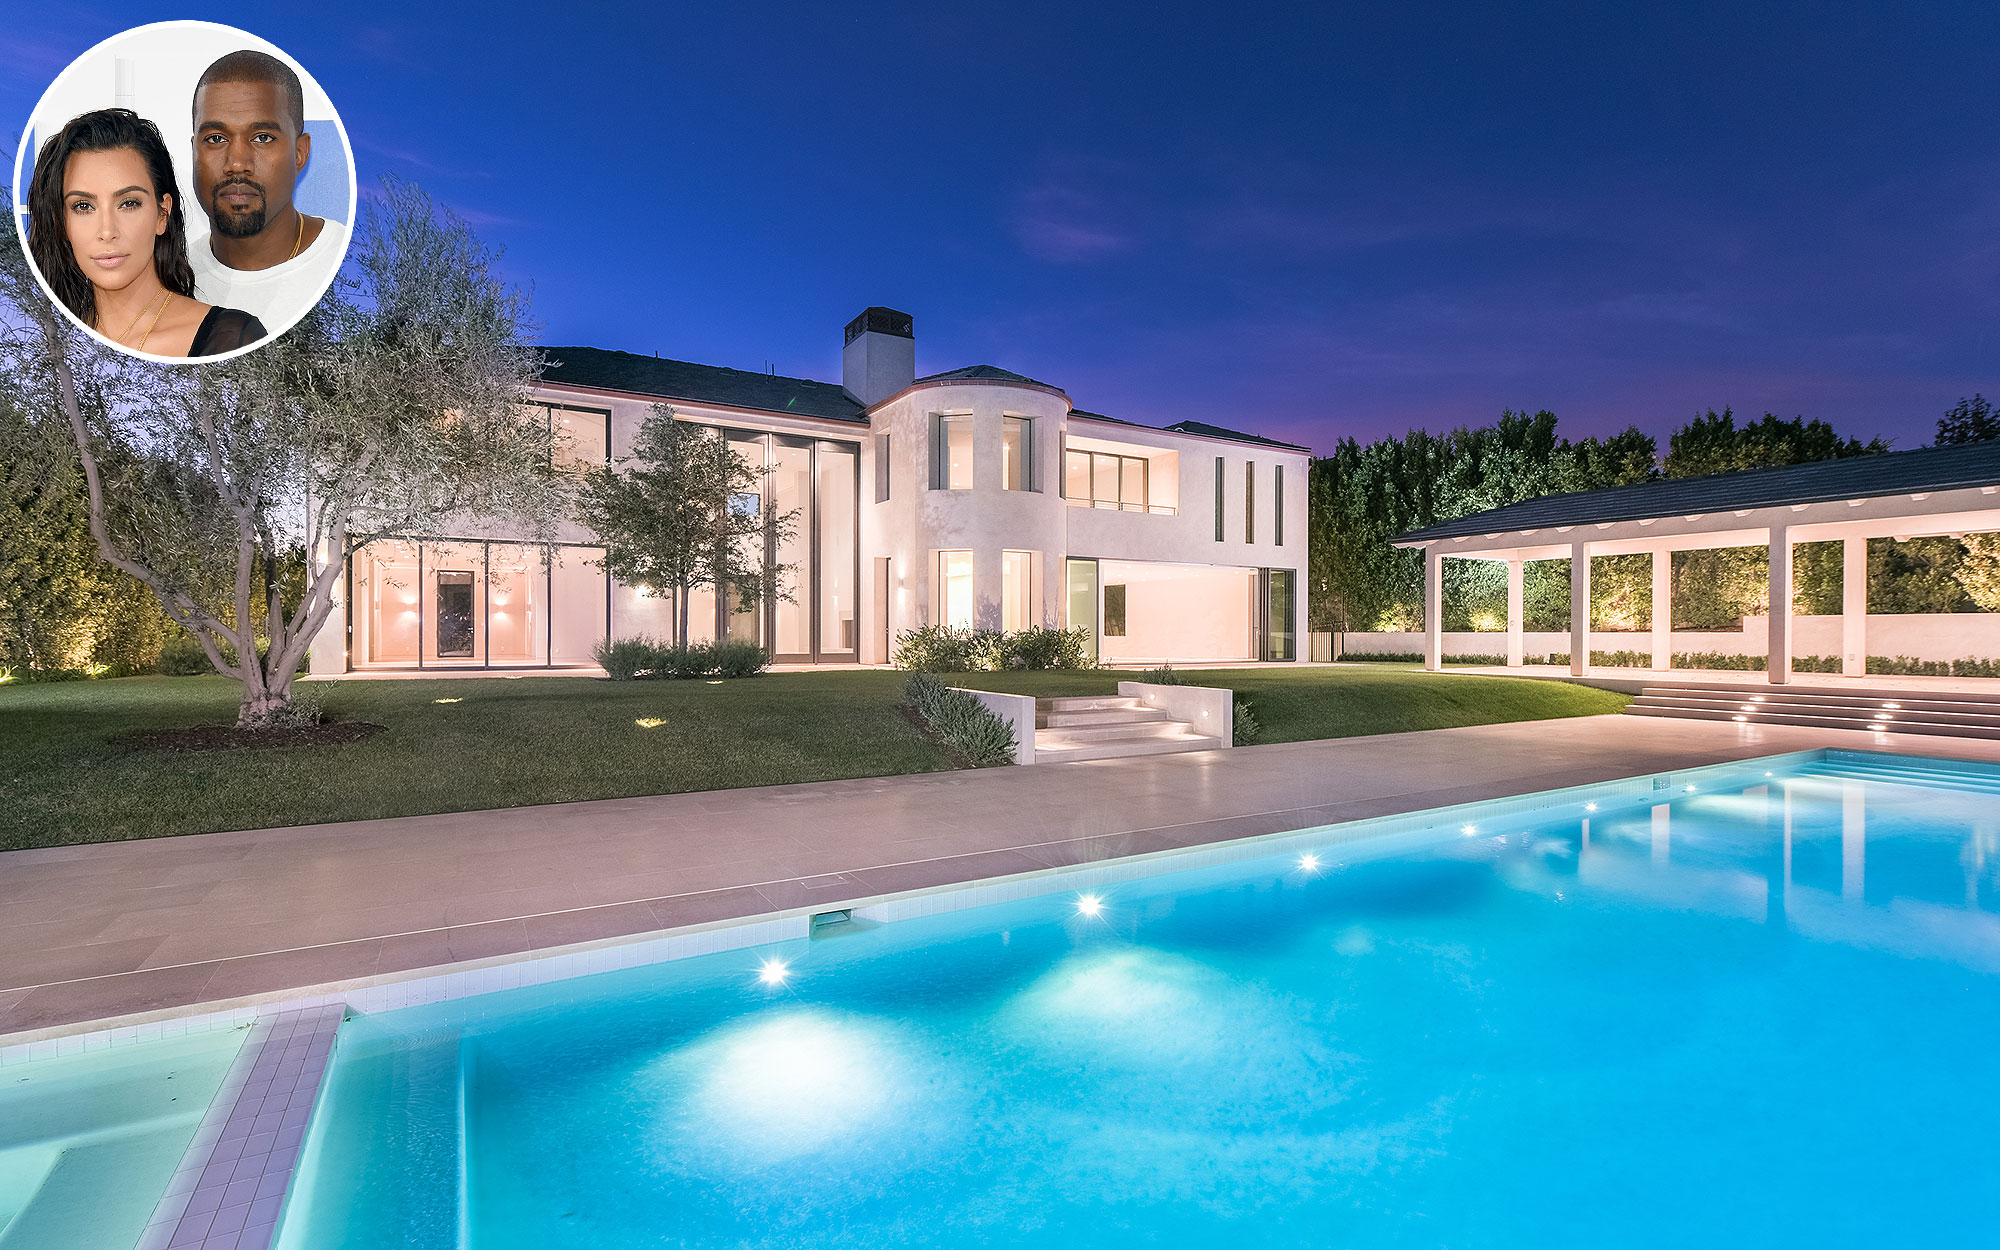 Kim Kardashian and Kanye West's Bel-Air Mediterranean Turned Modern